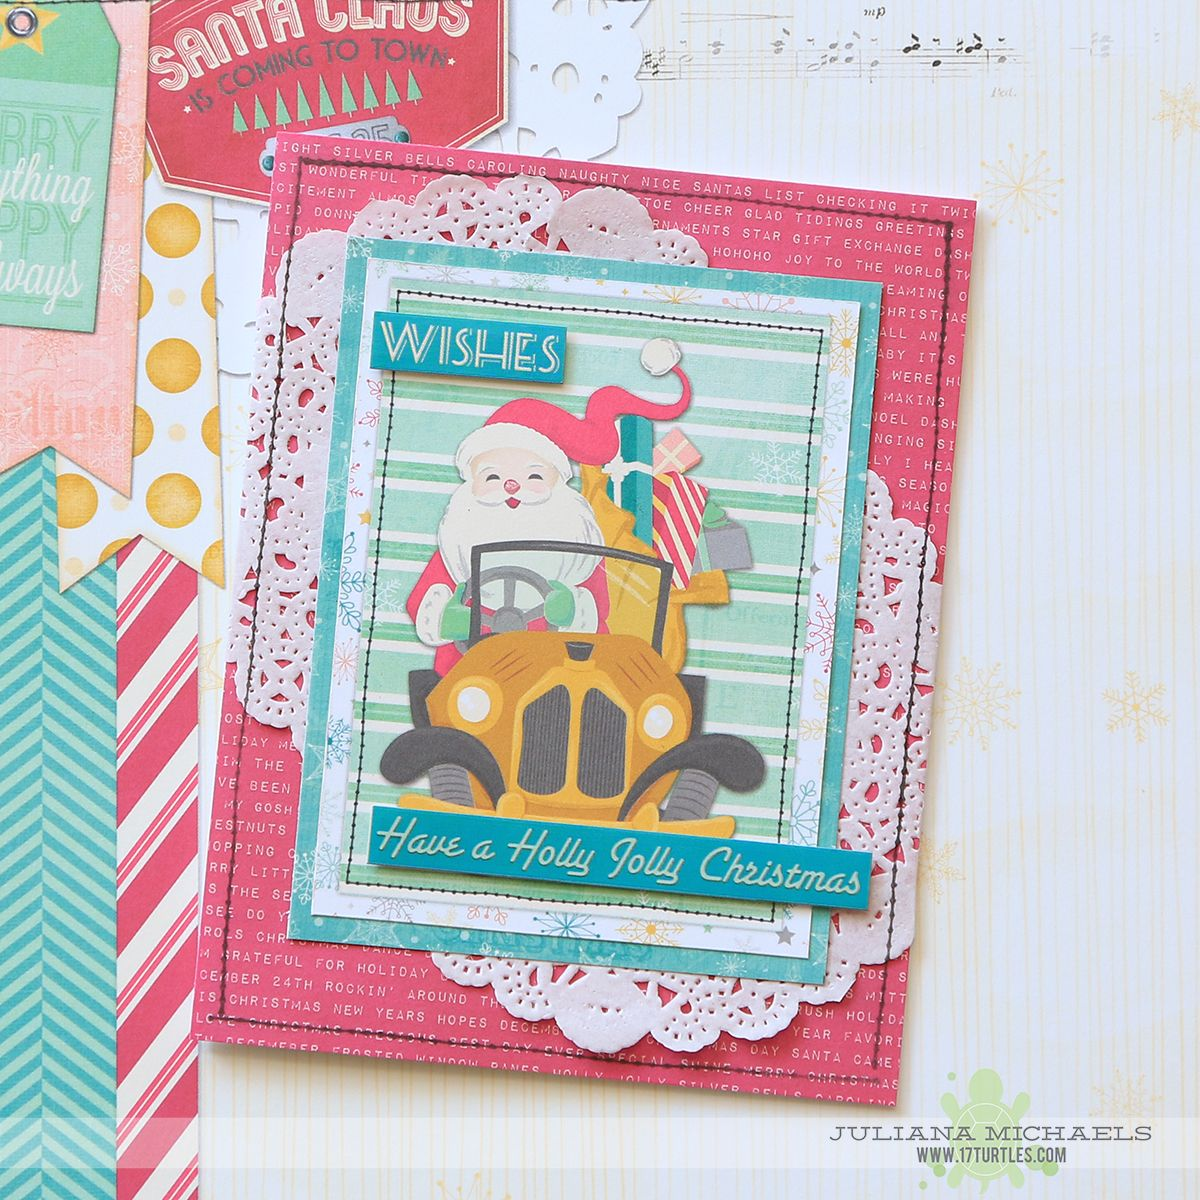 17turtles Christmas Cards with BoBunny Candy Cane Lane